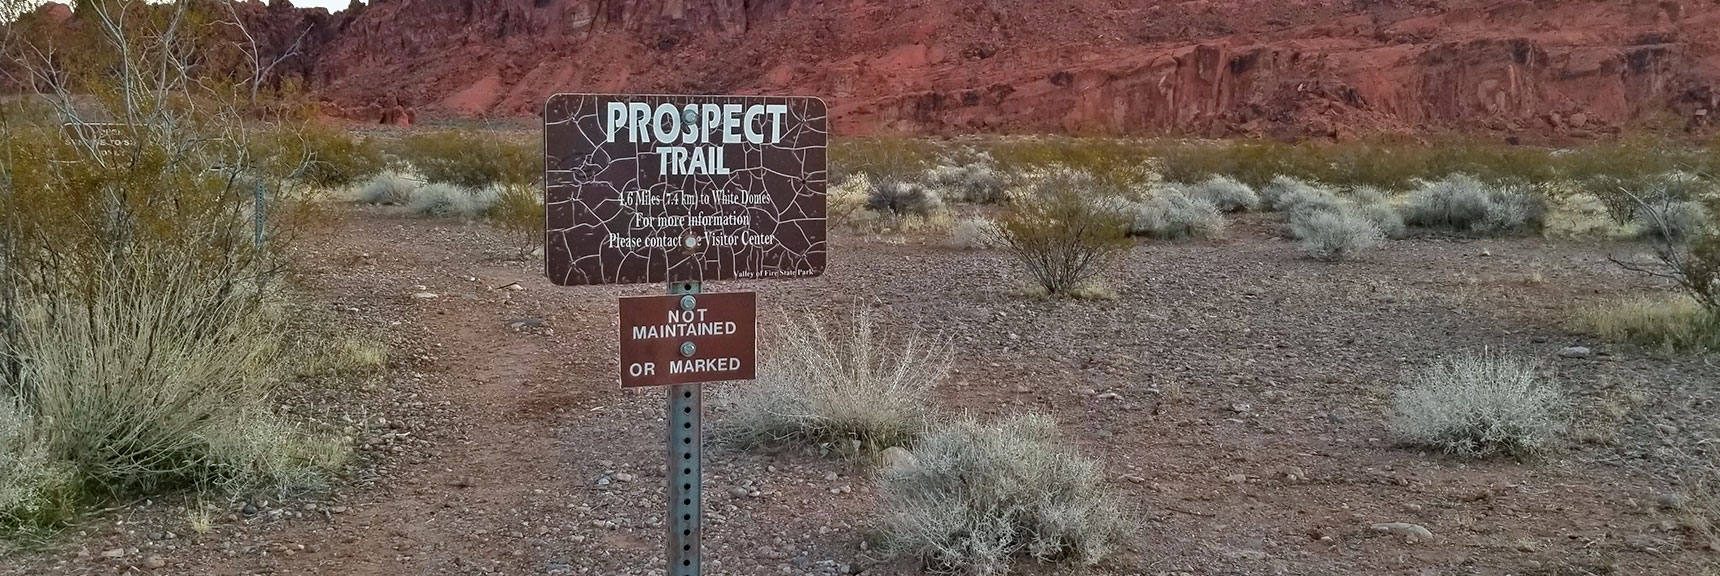 South Trailhead for Prospect Trail in Valley of Fire State Park, Nevada